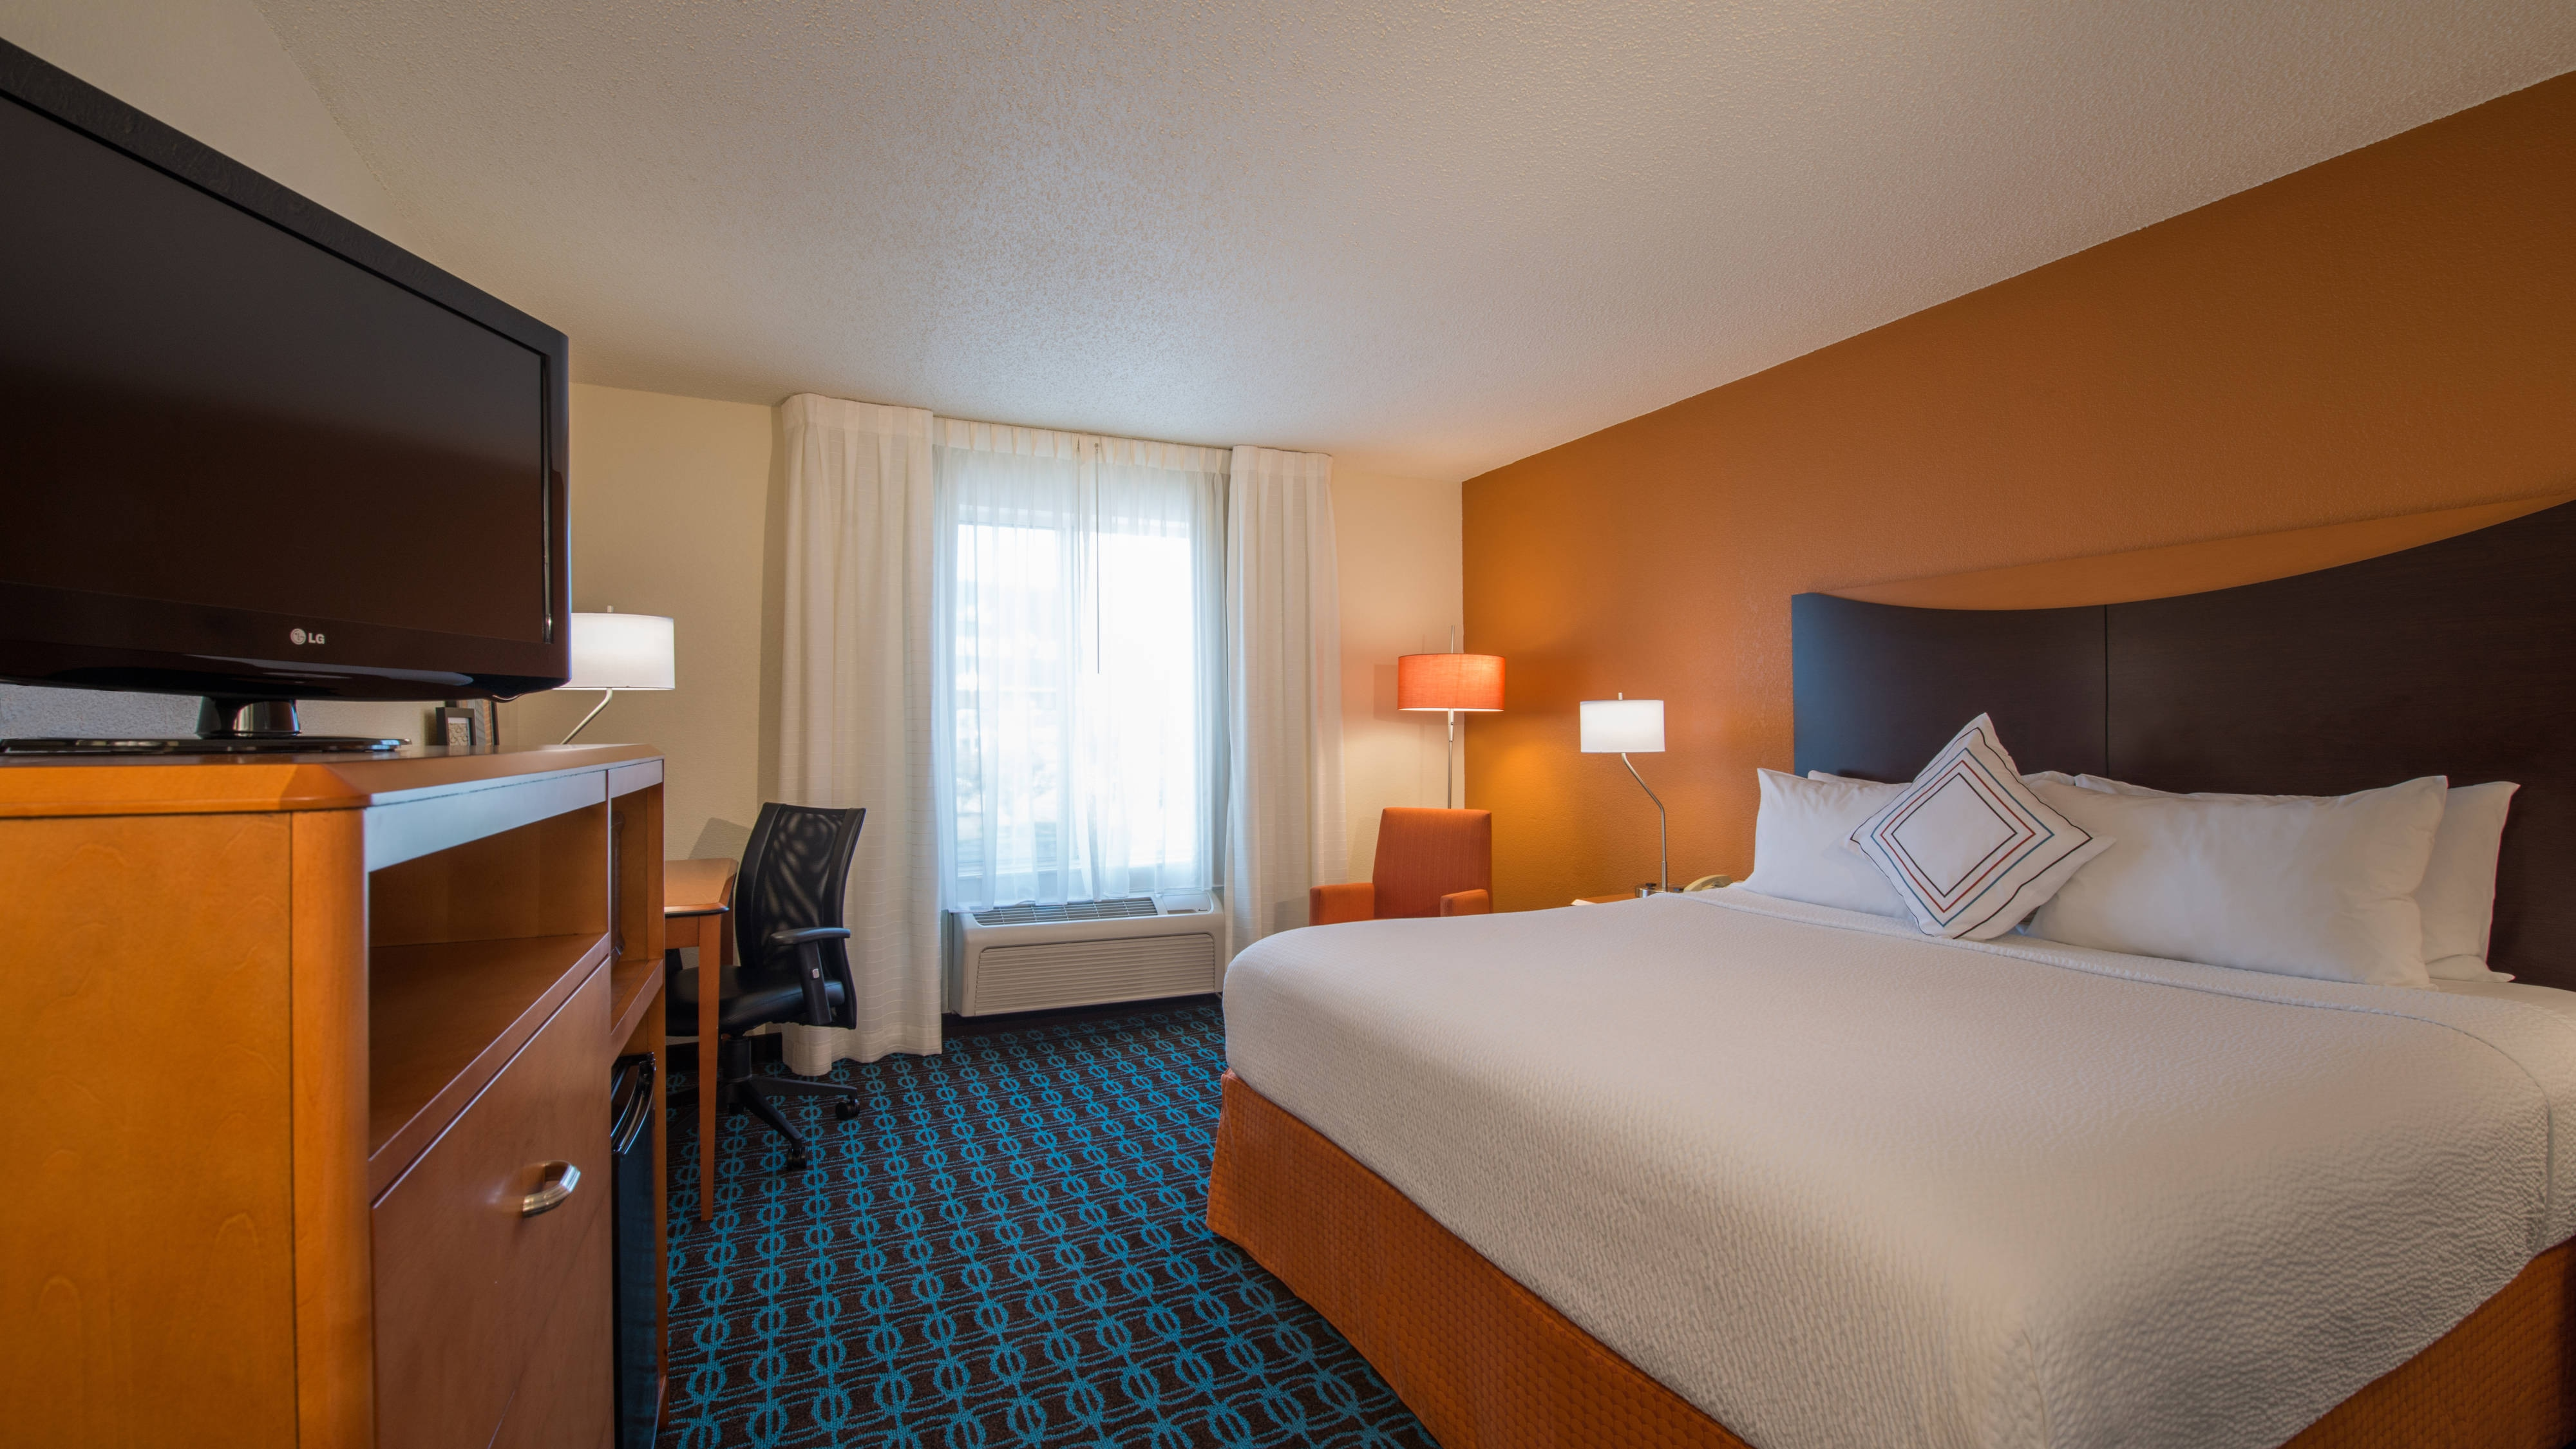 Hotels near Indianapolis Motor Speedway